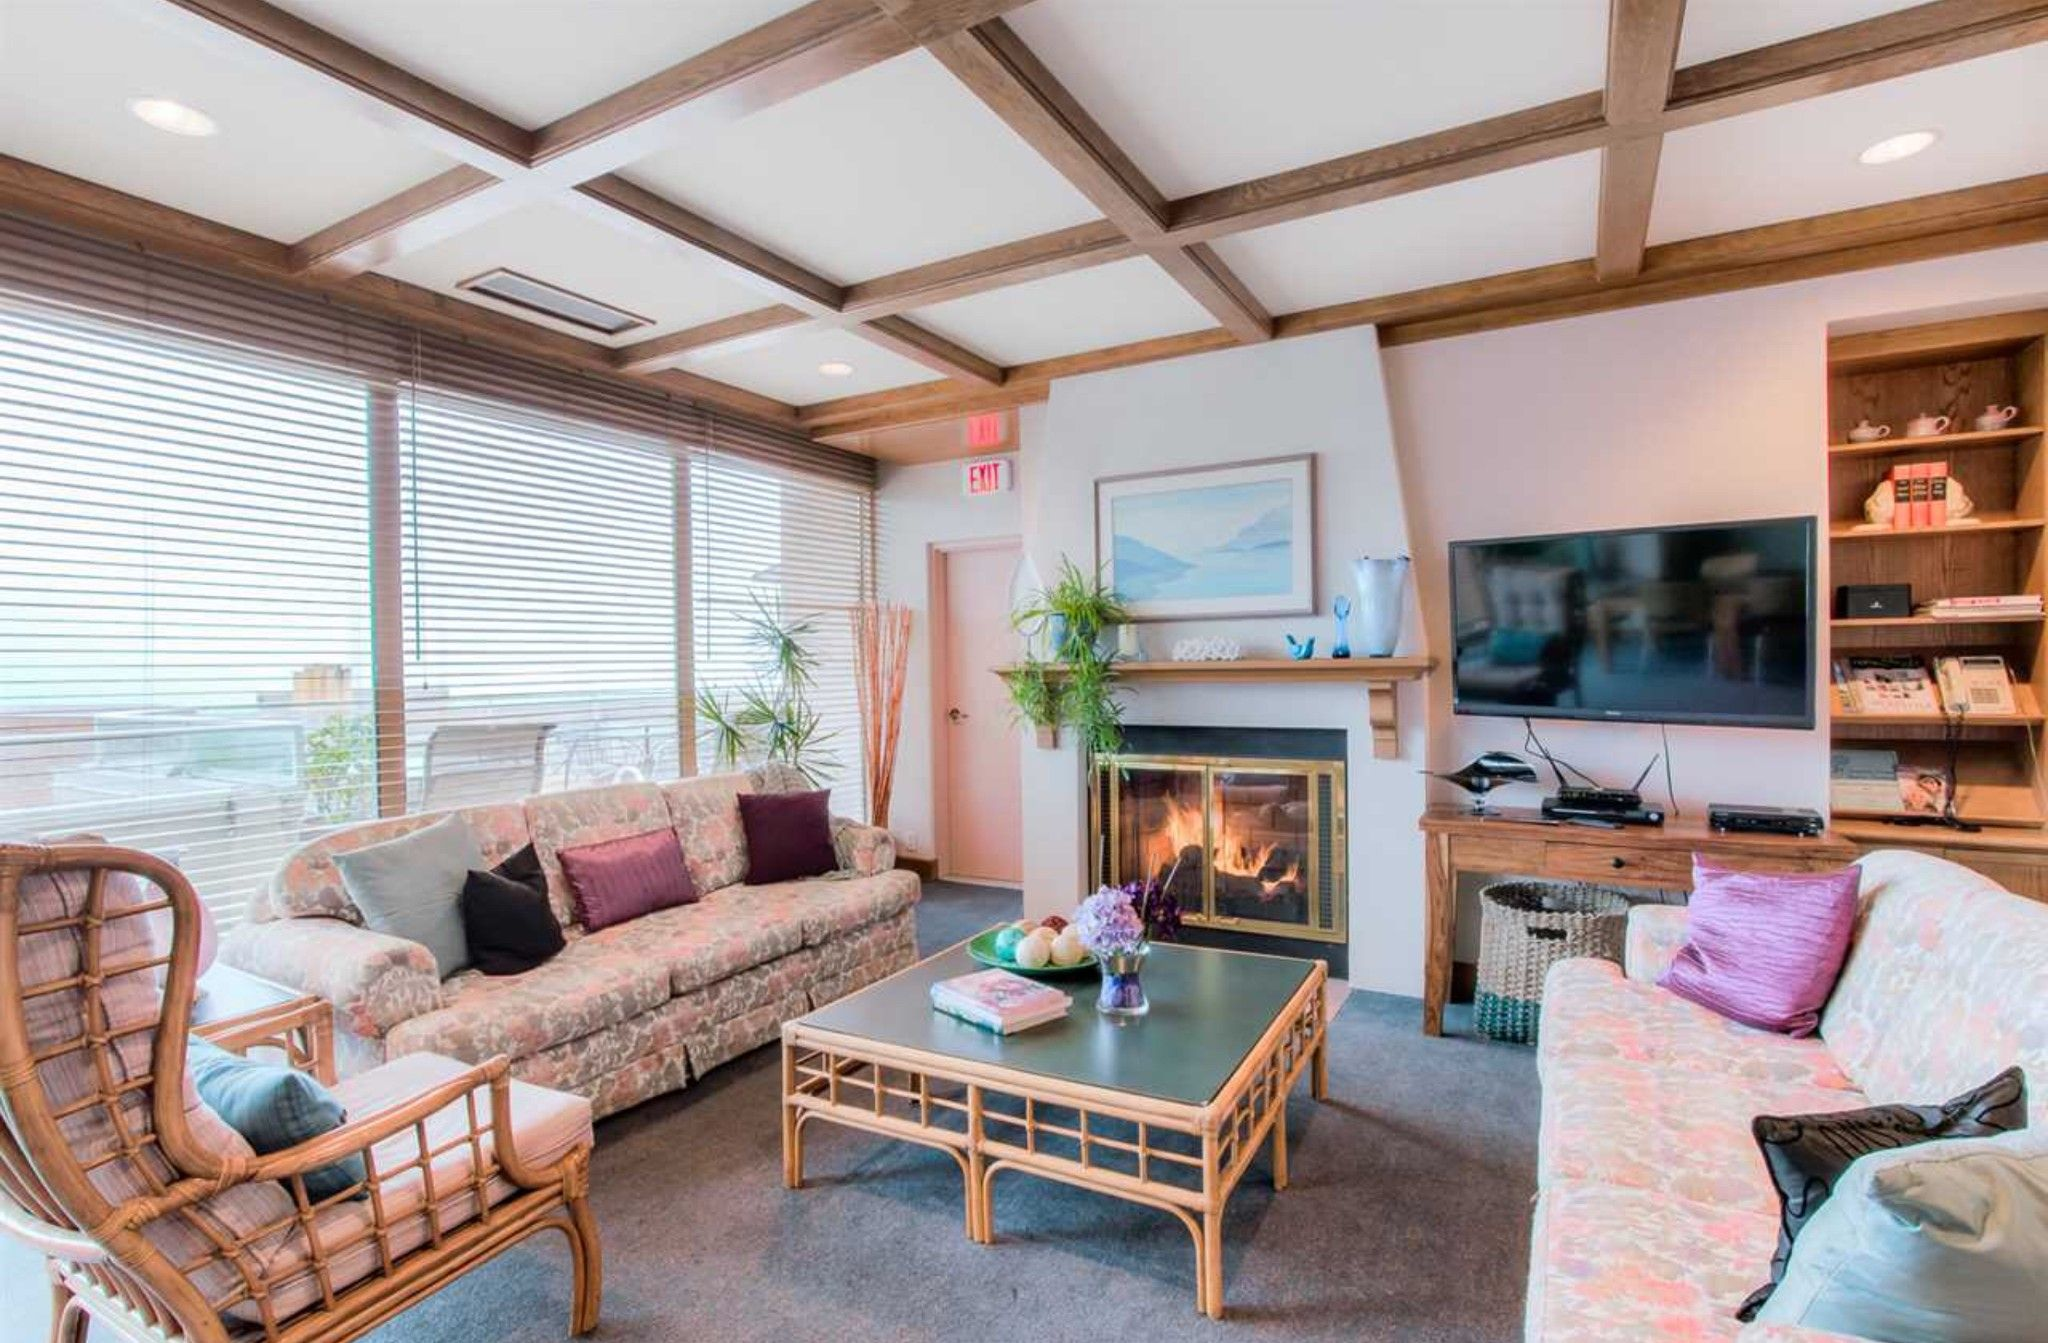 Photo 20: Photos: 410, 15111 Russell Avenue: White Rock Condo for sale (South Surrey White Rock)  : MLS®# R2152299